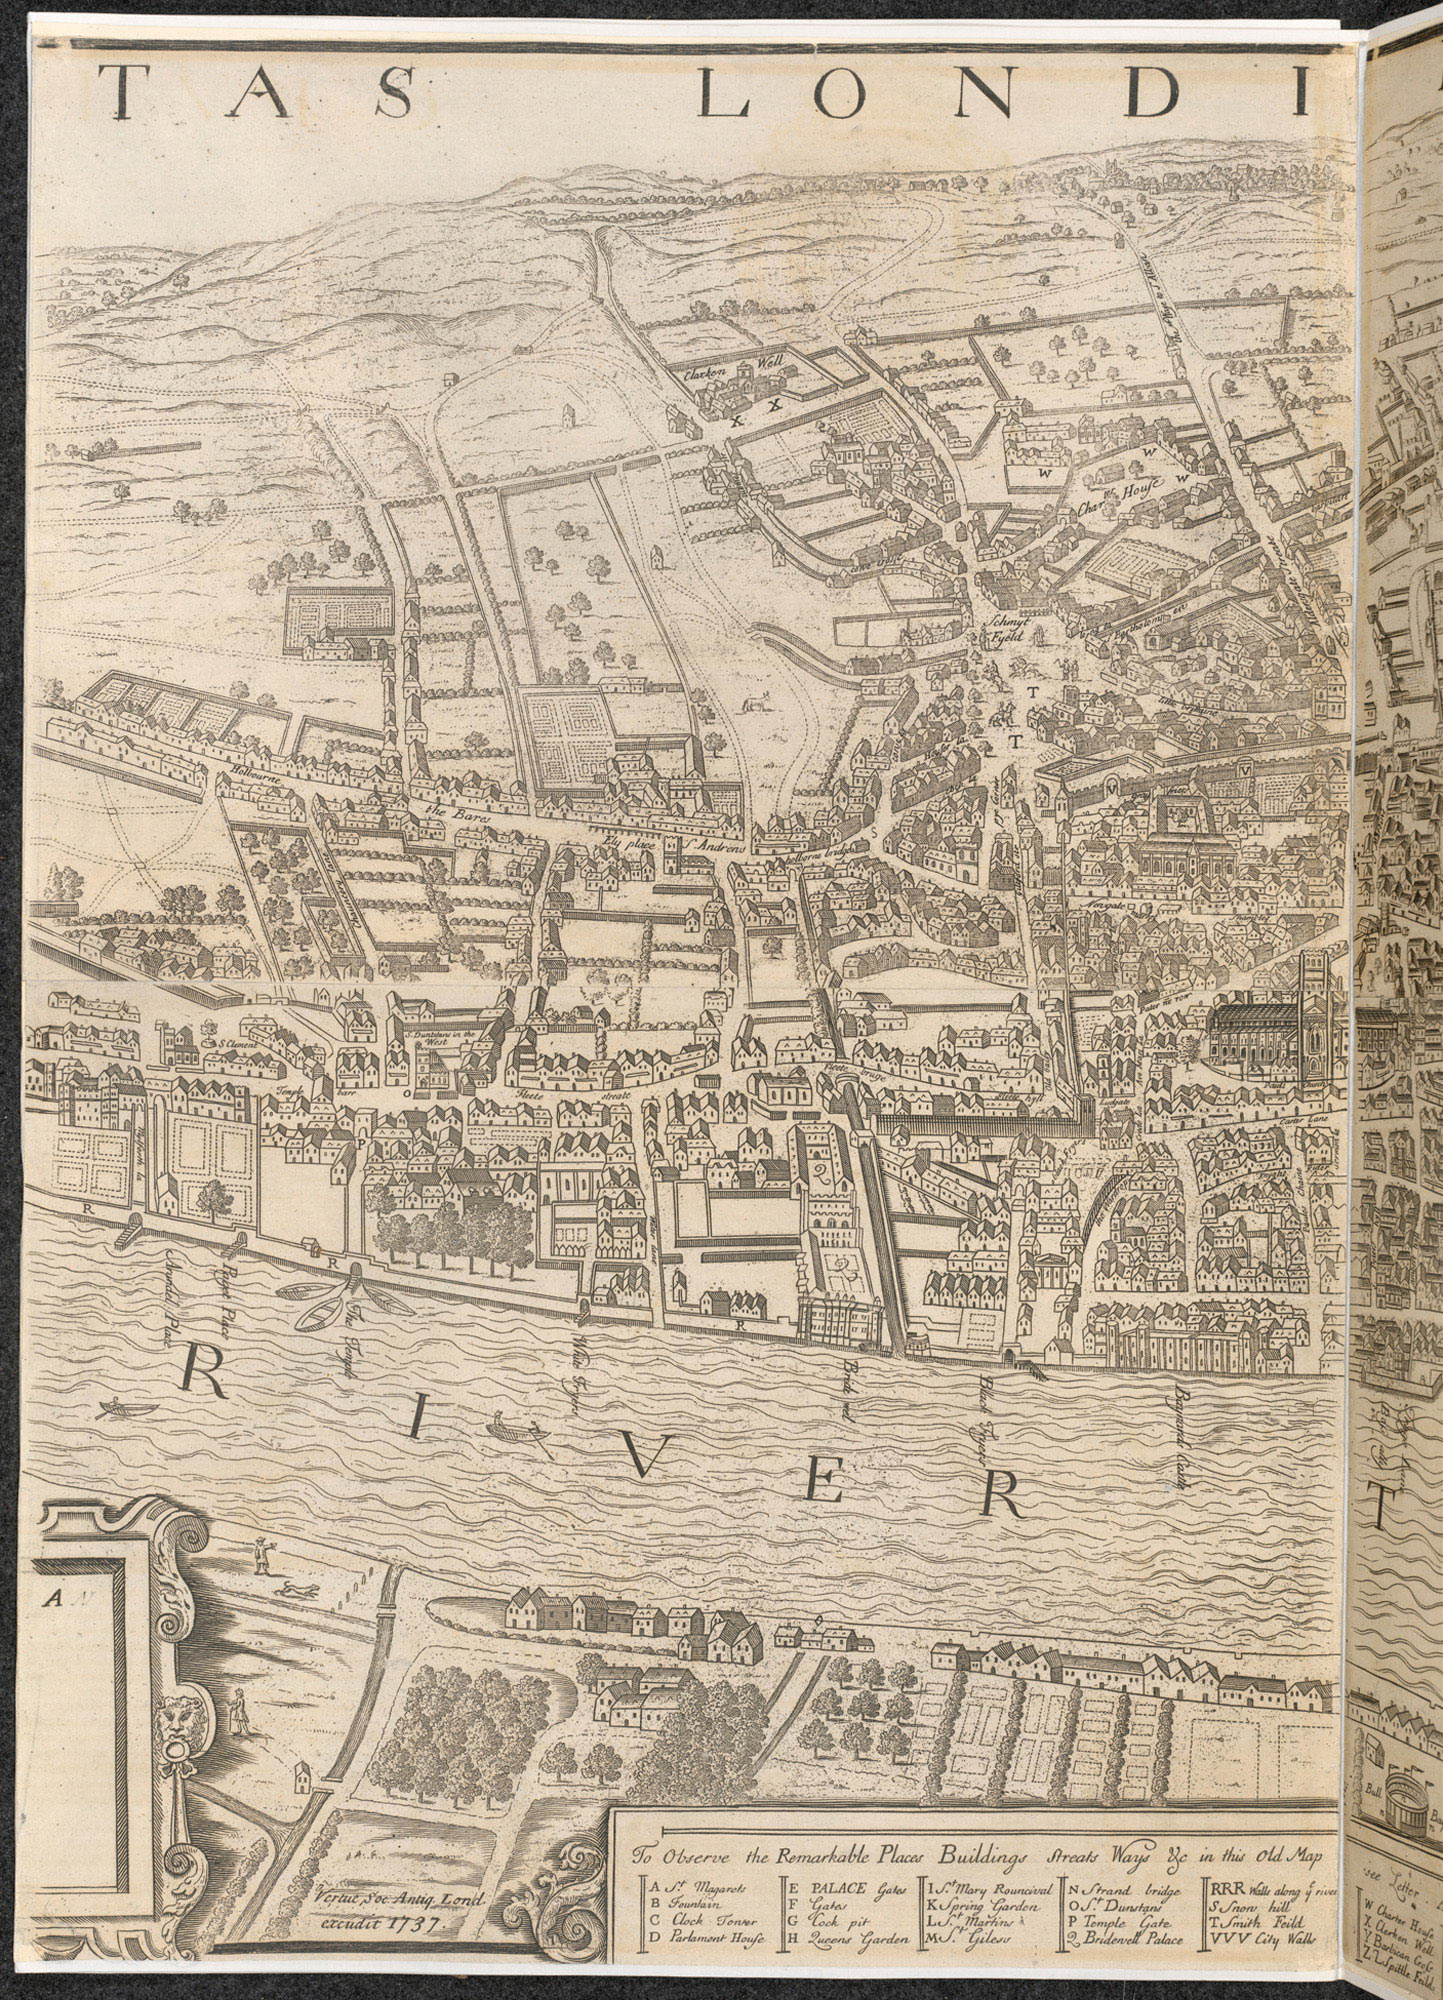 London 1600 Map.Agas Map Showing Blackfriars Precinct And Its Proximity To The Royal